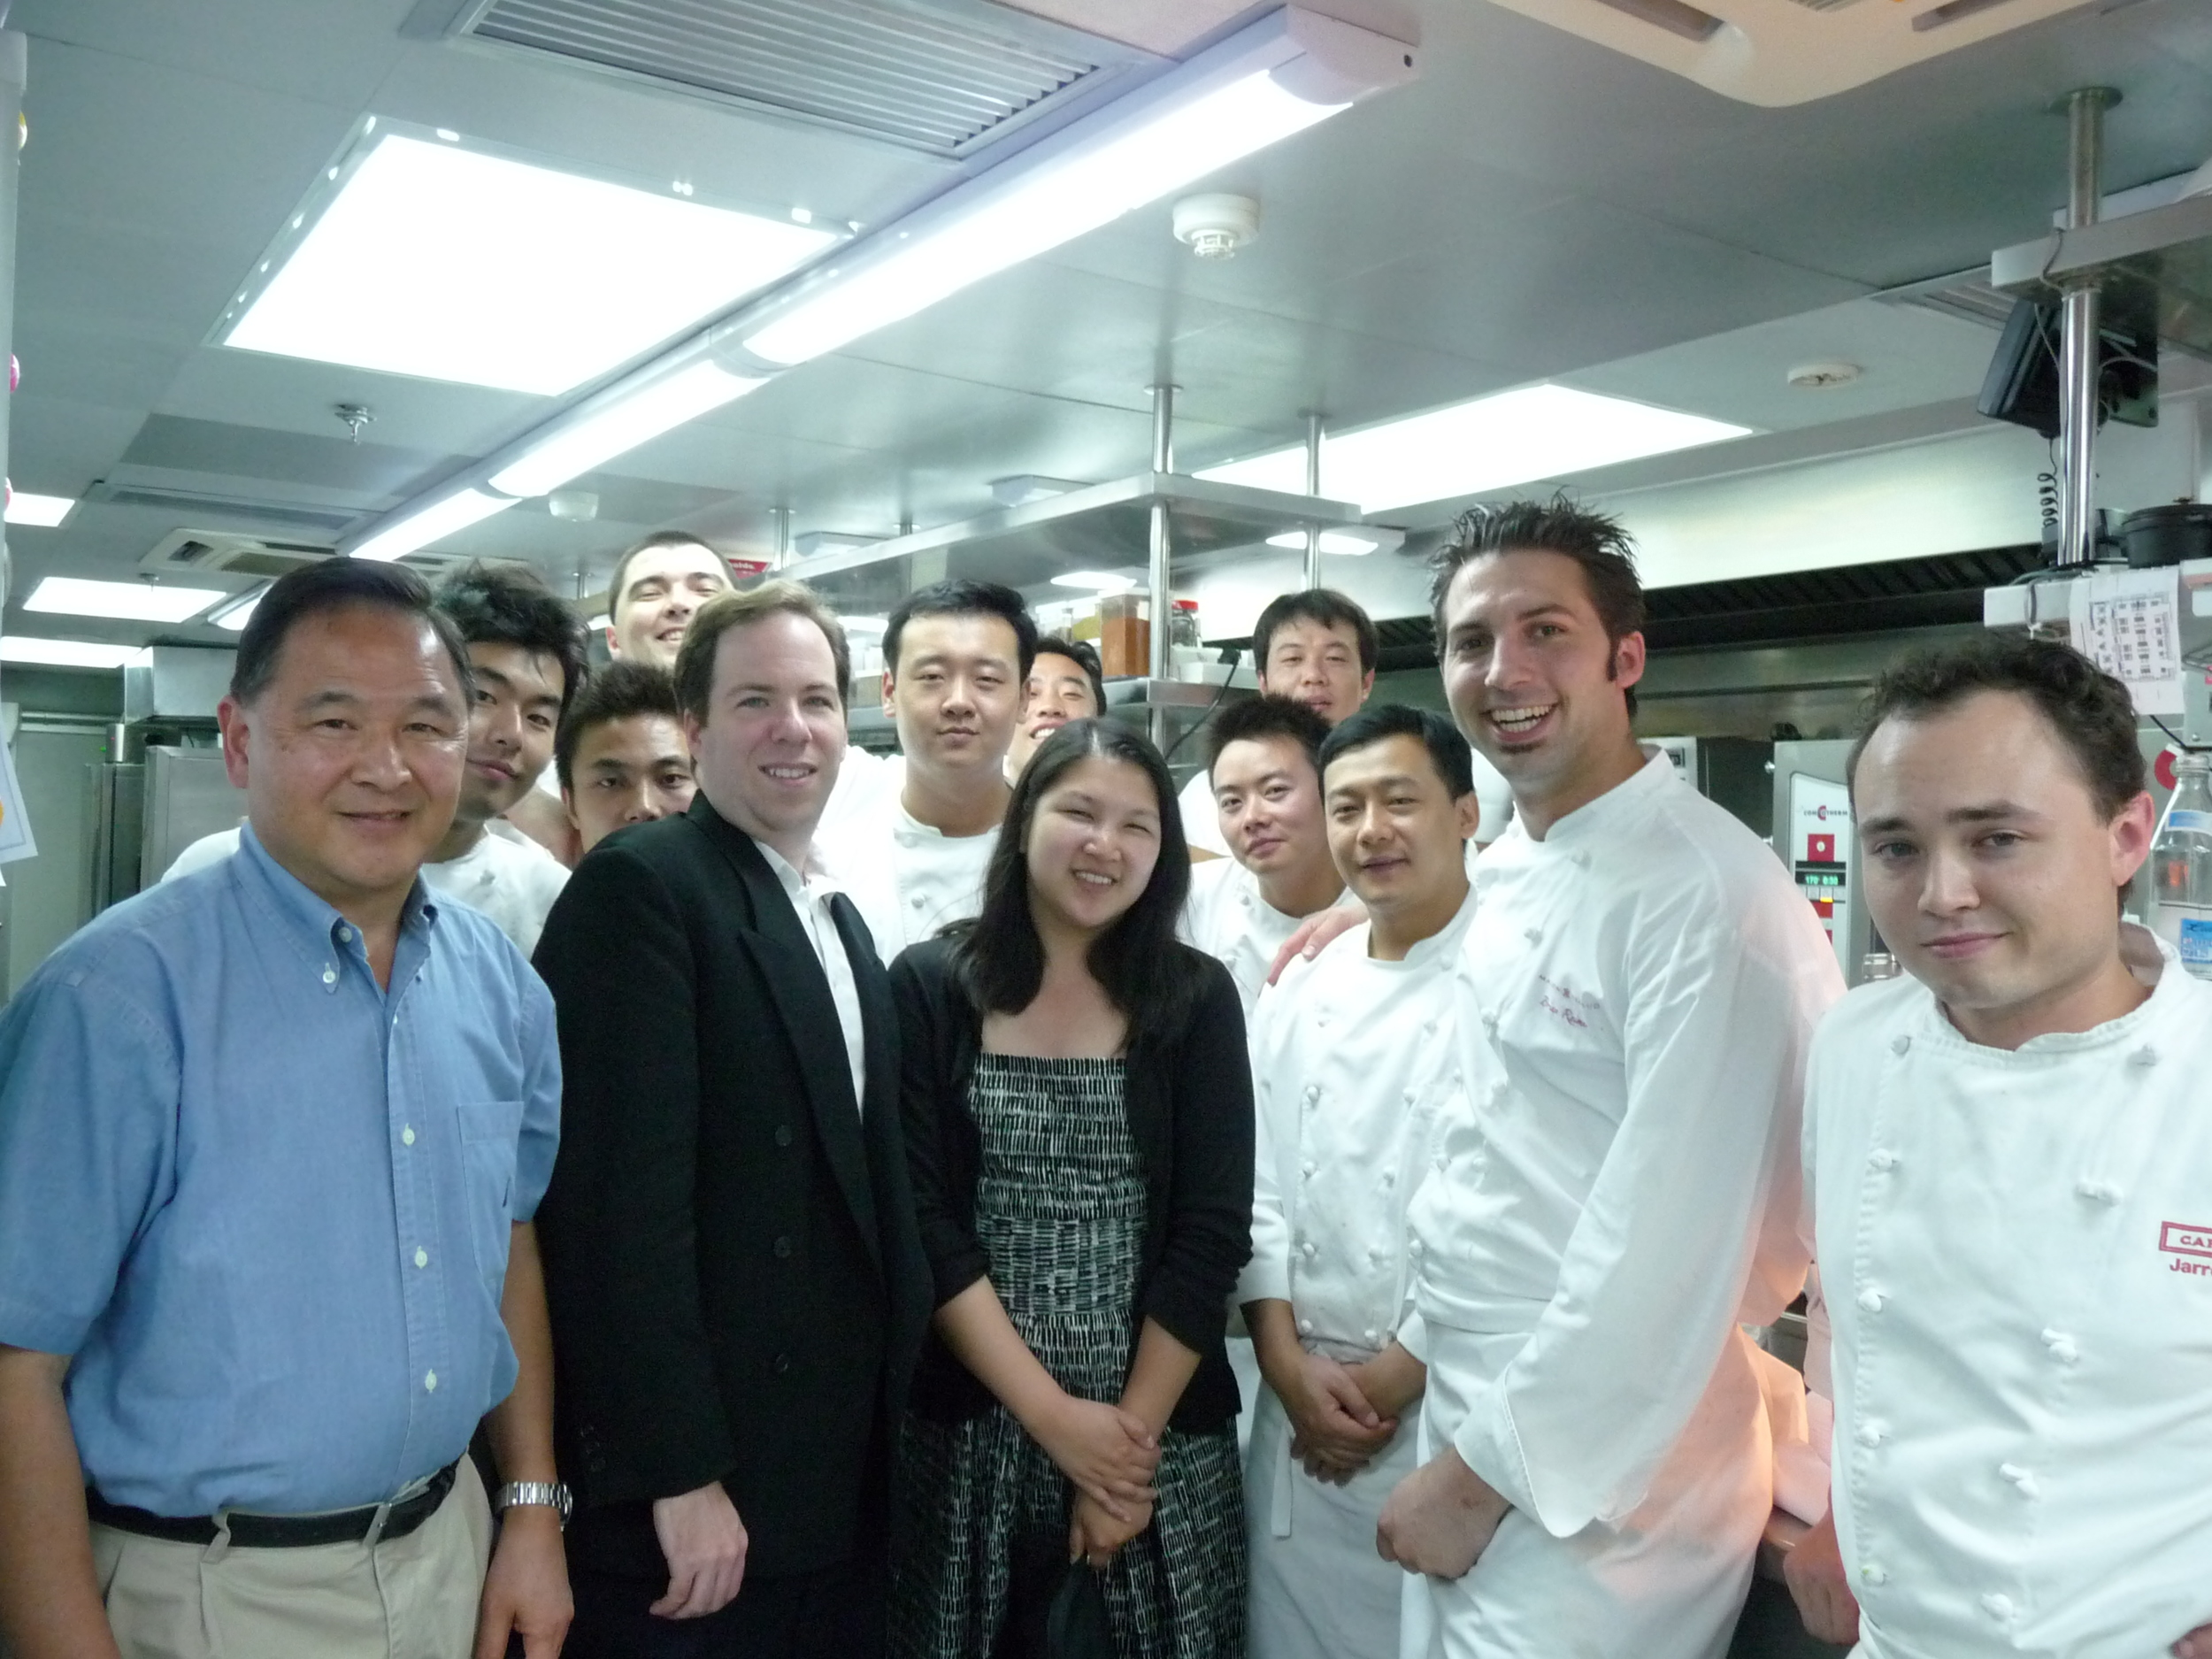 Guests at the Maison Boulud